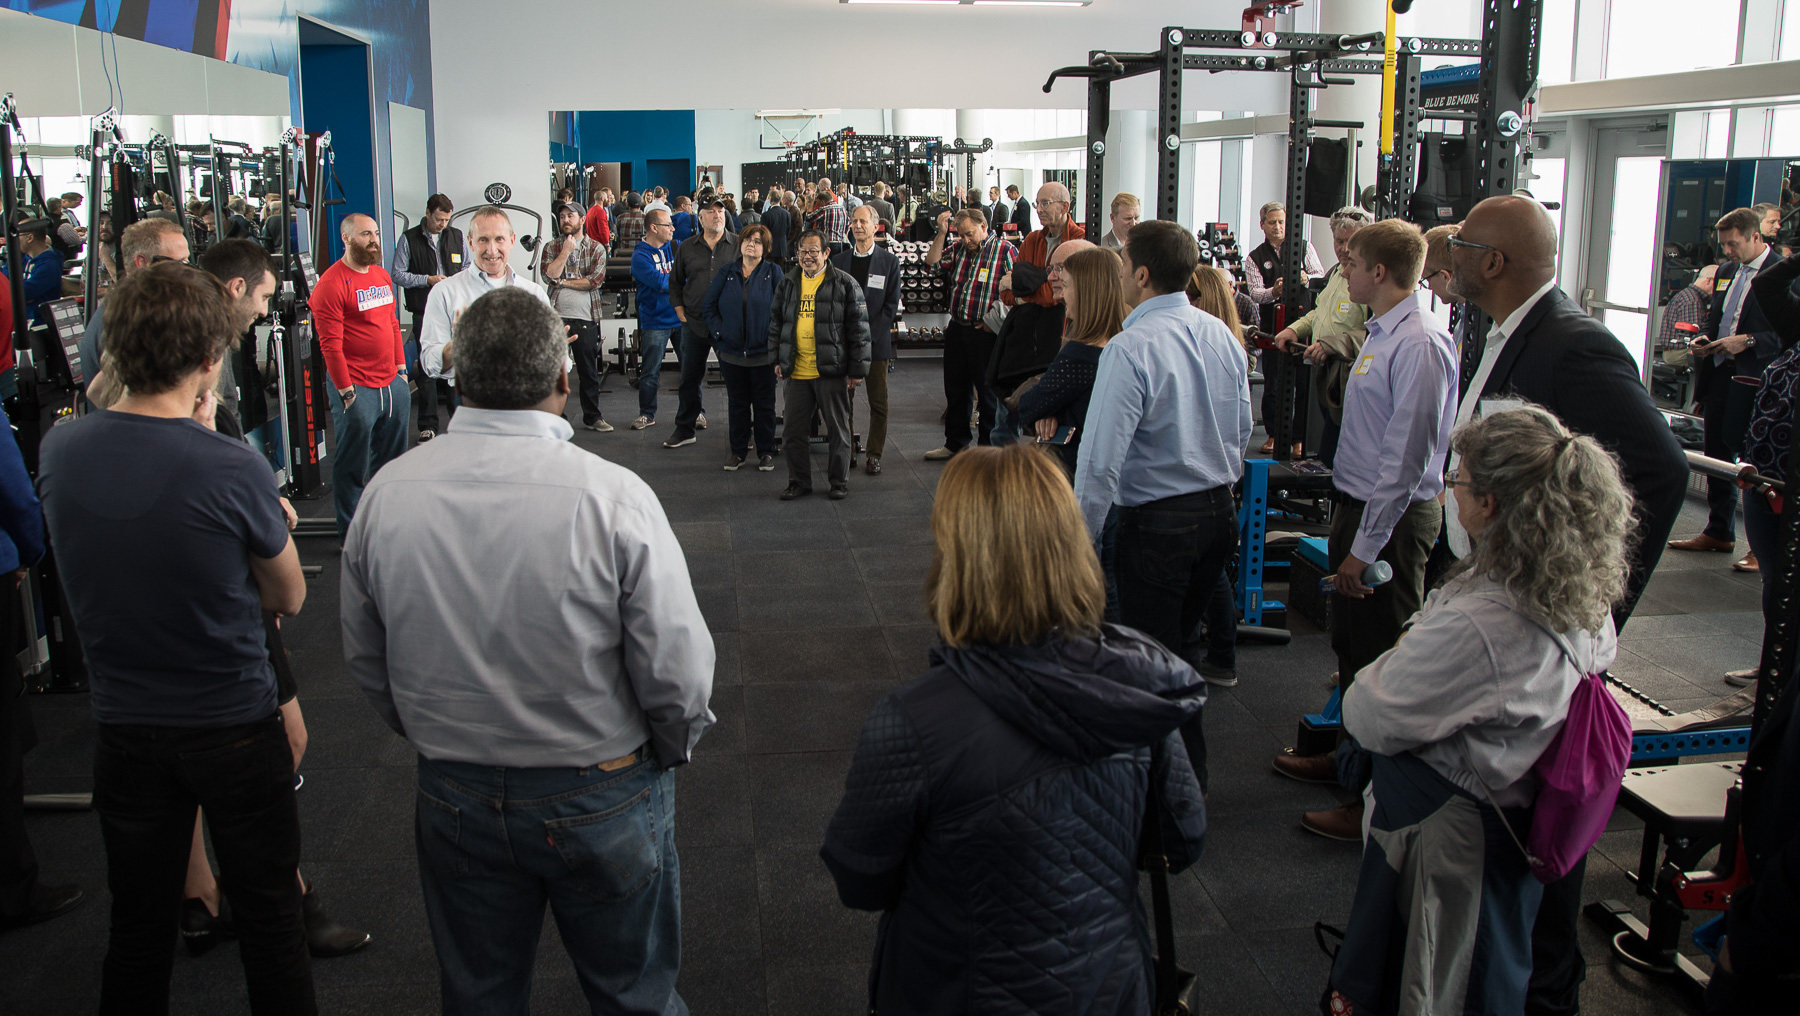 Attendees explore the weight room during the Chicago Ideas Week tour. (DePaul University/Jeff Carrion)